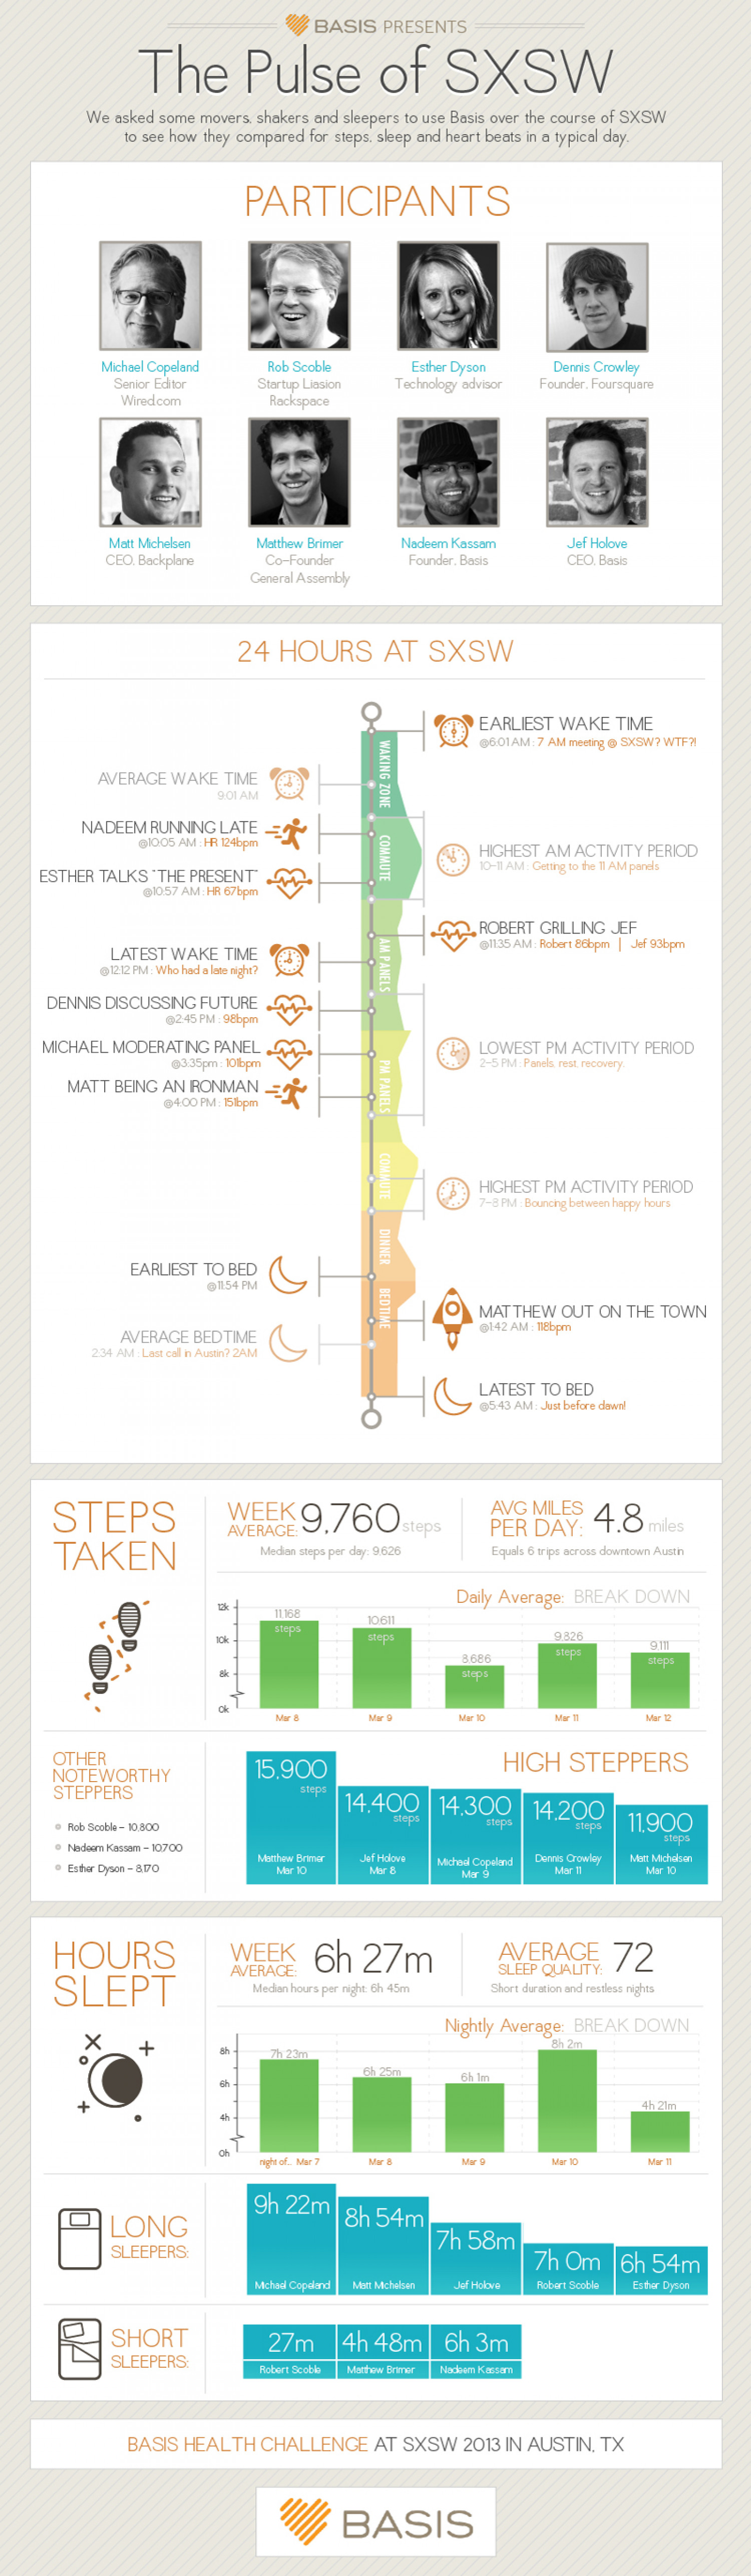 The Pulse of SXSW Infographic